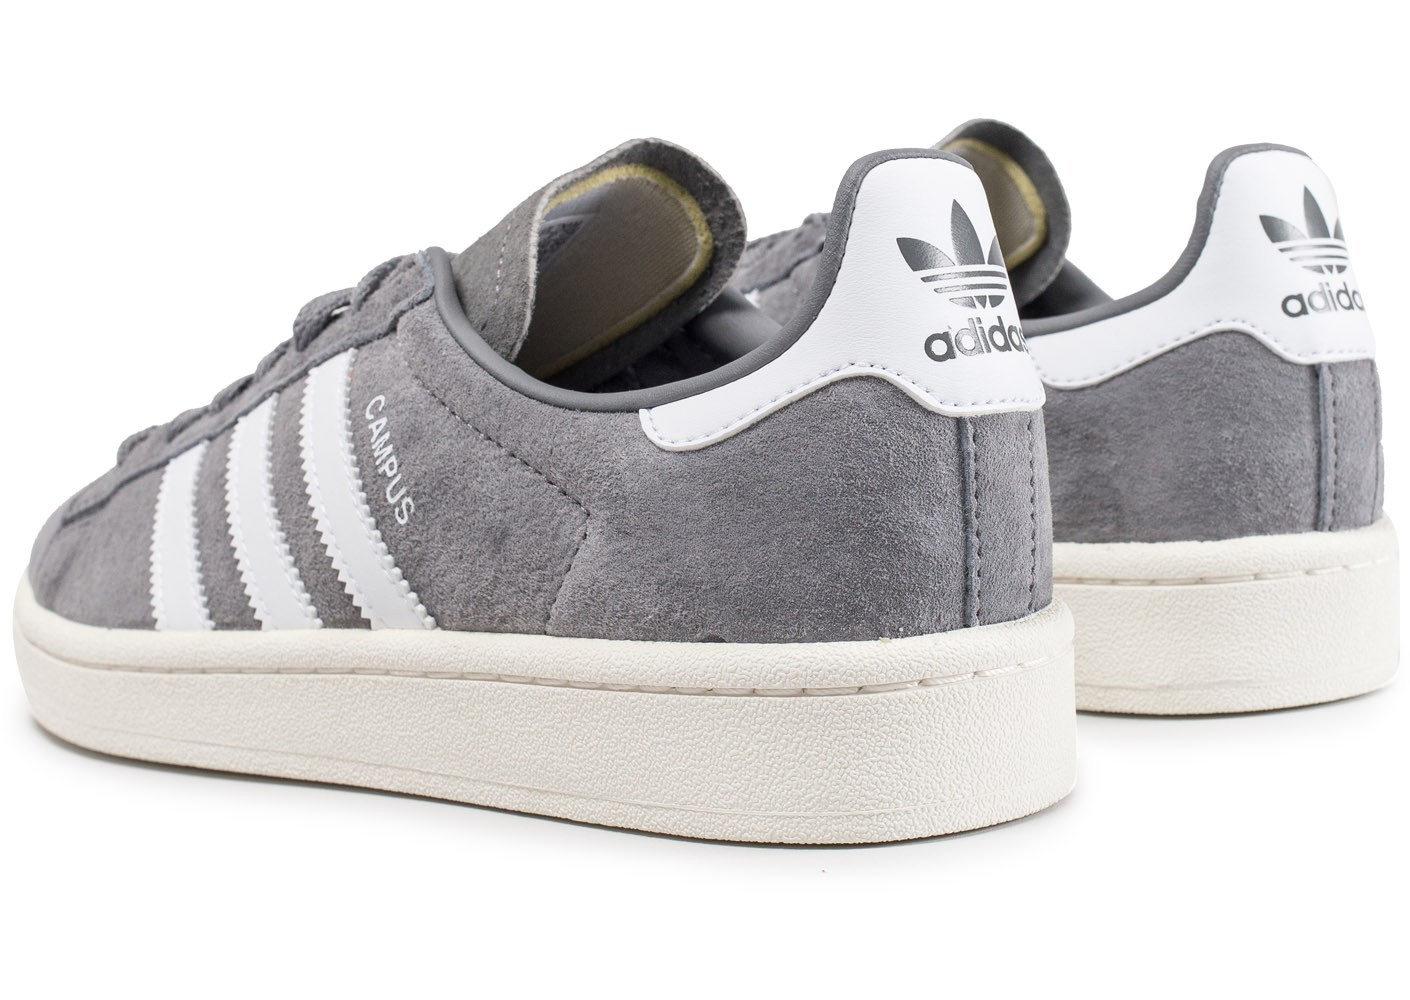 adidas campus grise fonce